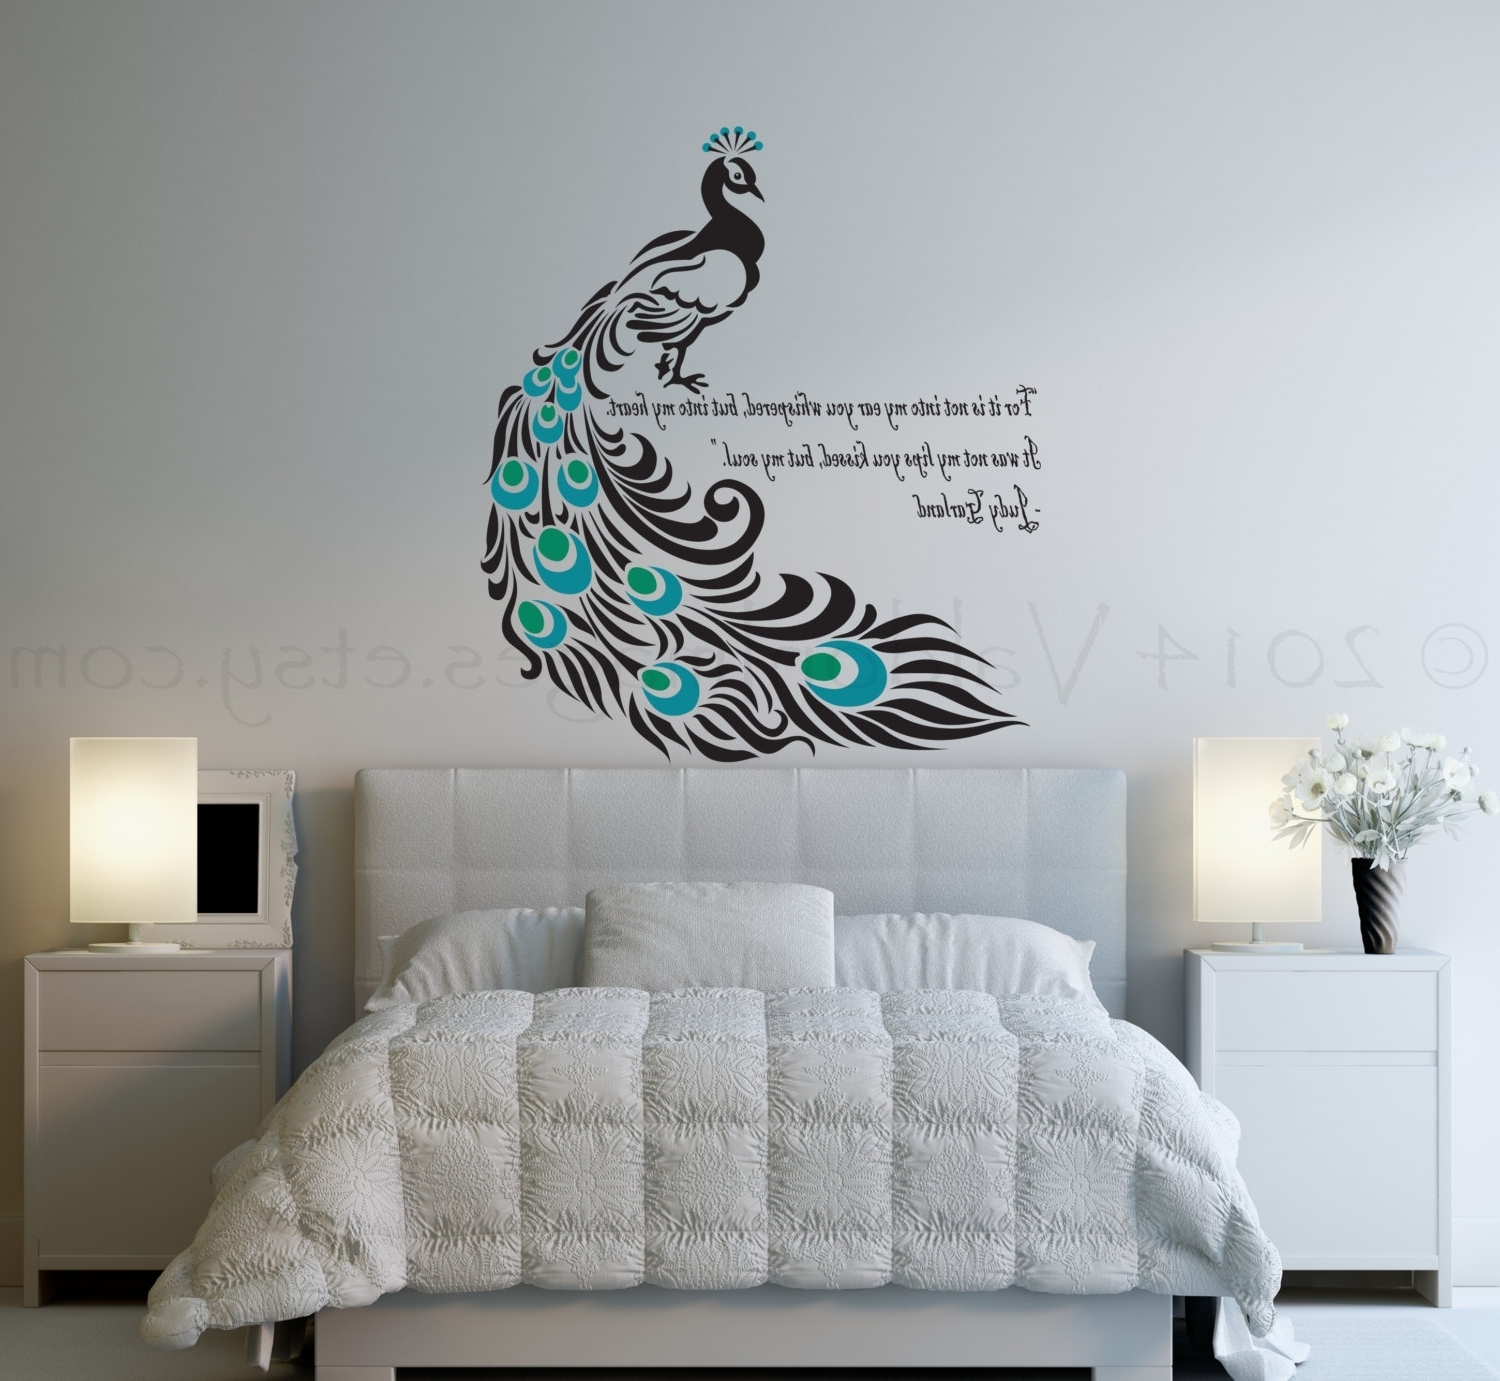 Widely Used New Wall Art Painting Ideas For Bedroom (View 14 of 15)